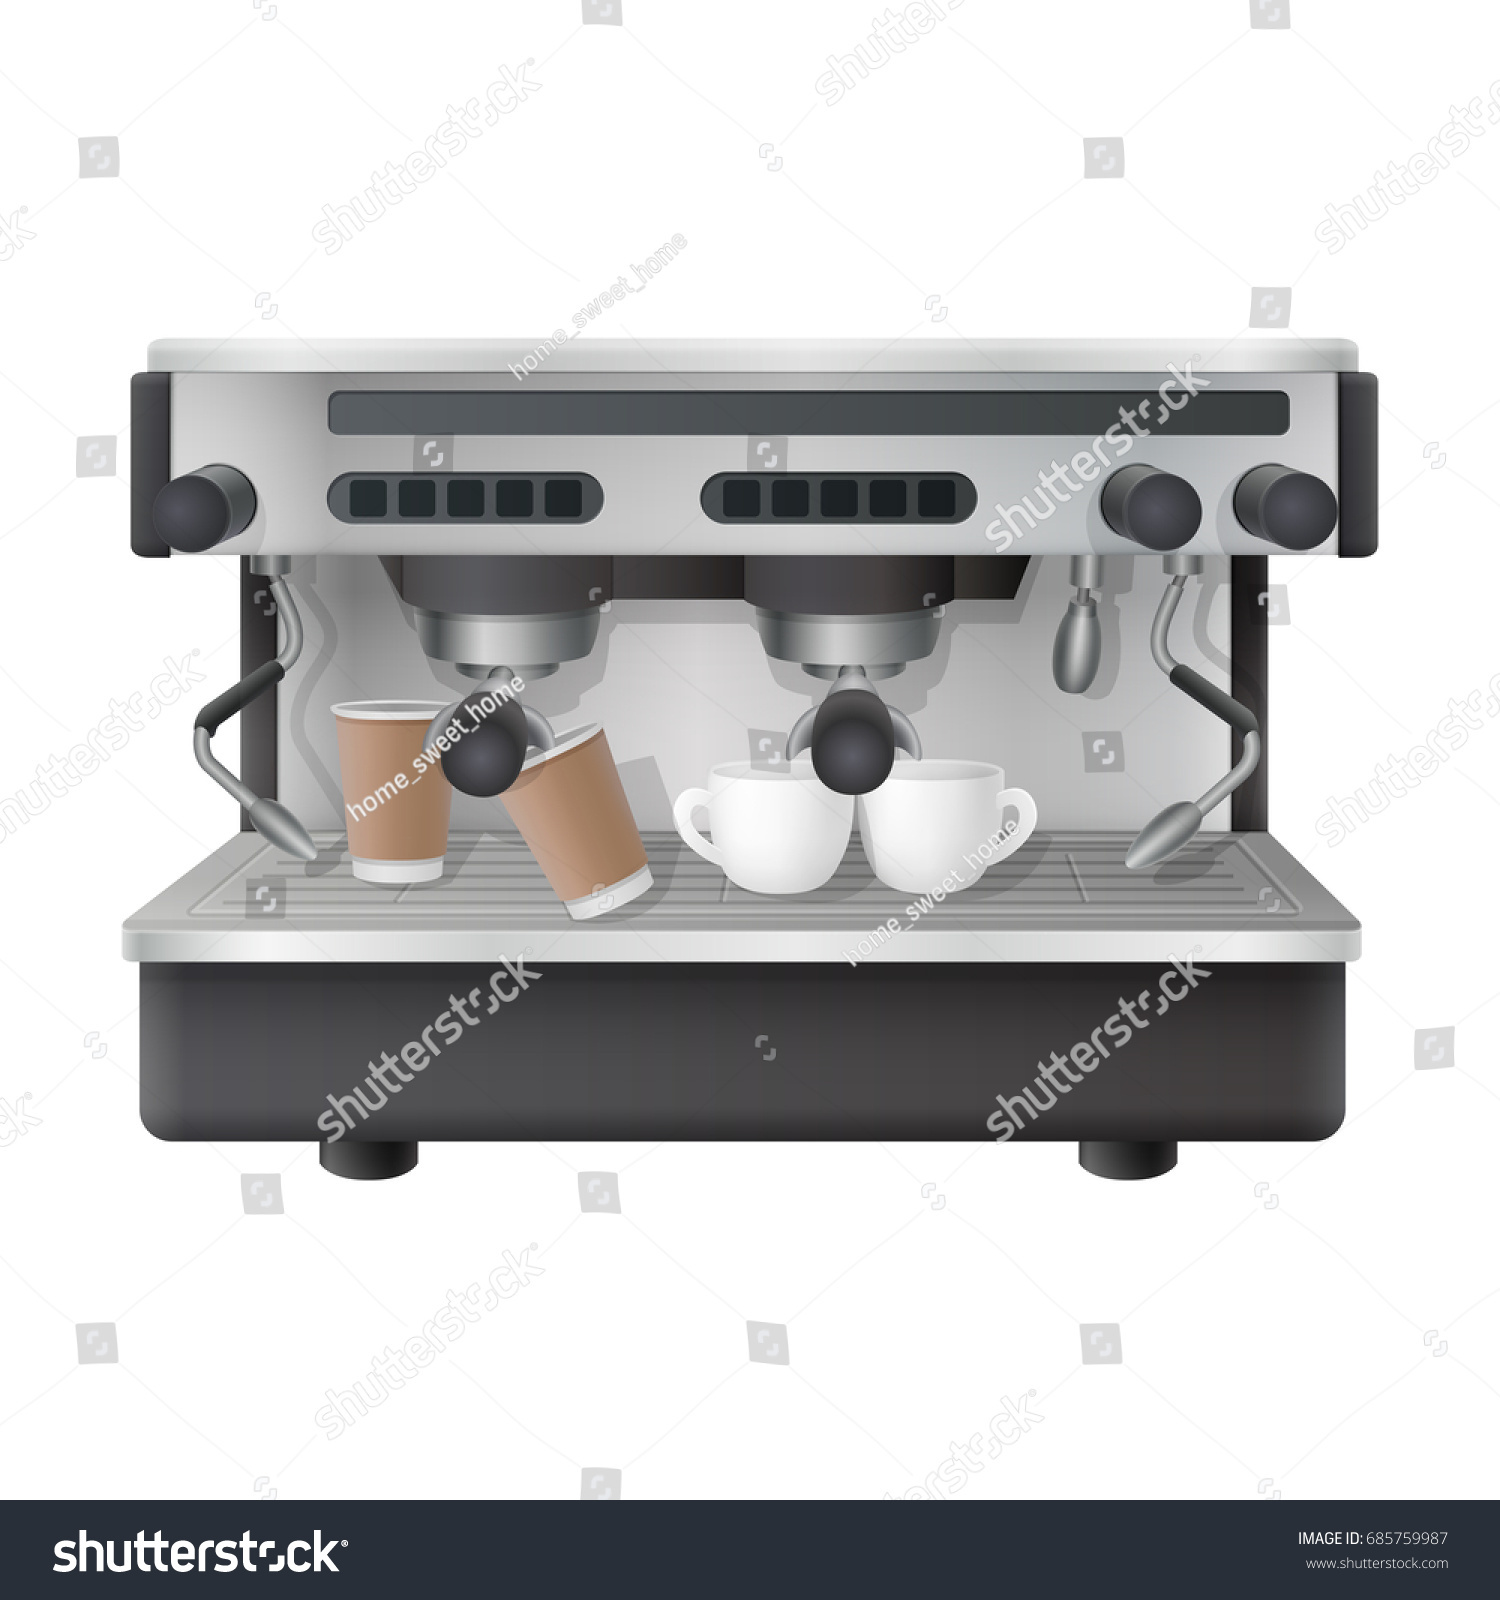 Automatic Coffee Maker Made In Italy : Italian Coffee Maker Stainless Steel. Brikkajpg. Espressojpg. Full Image For Italian Commercial ...